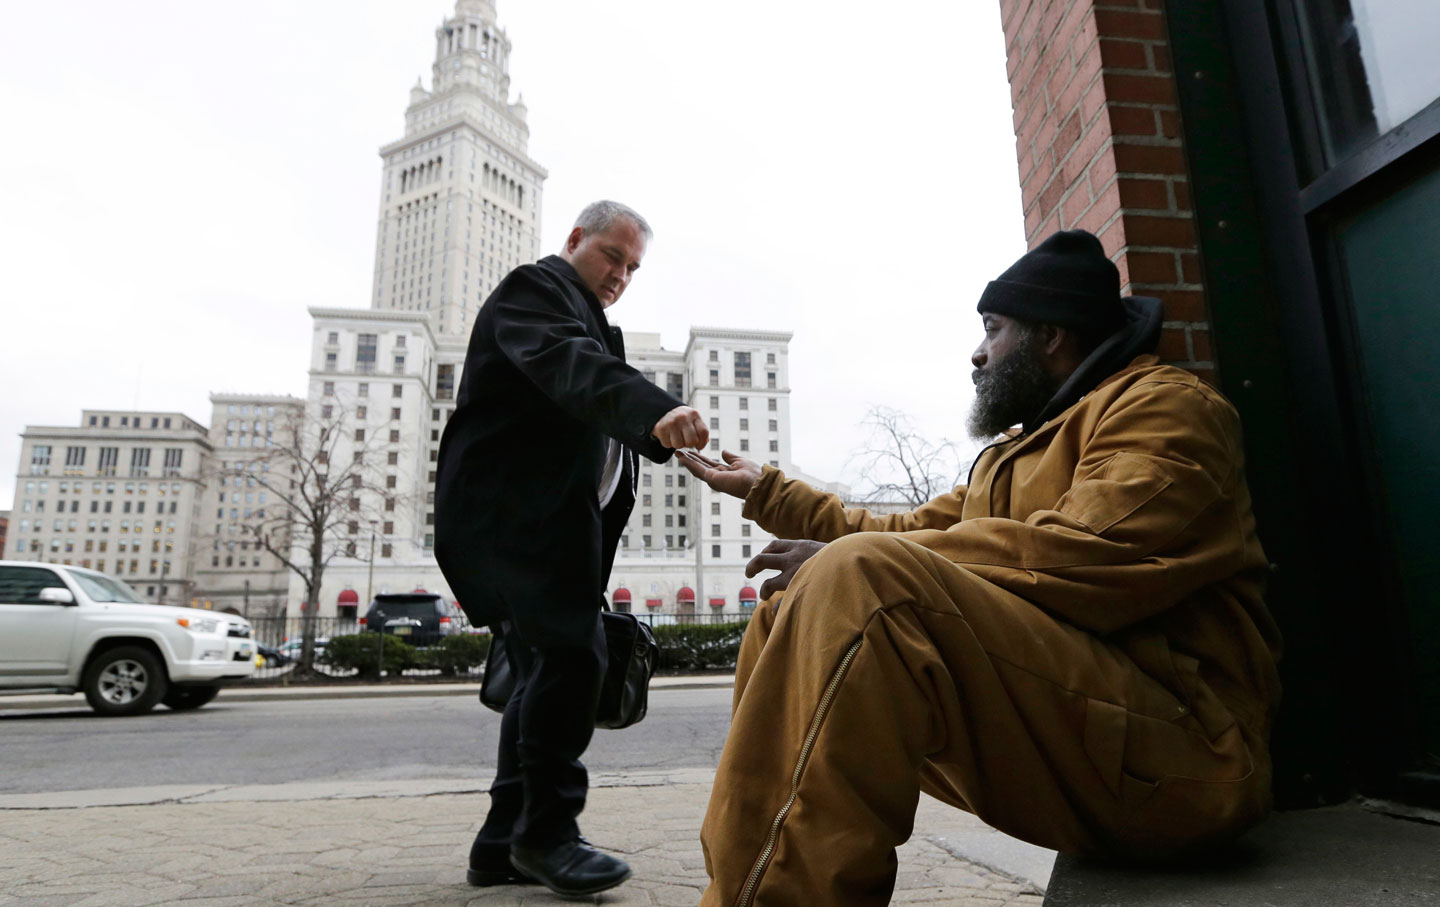 Kenny Chapman, 53, receives coins from a man